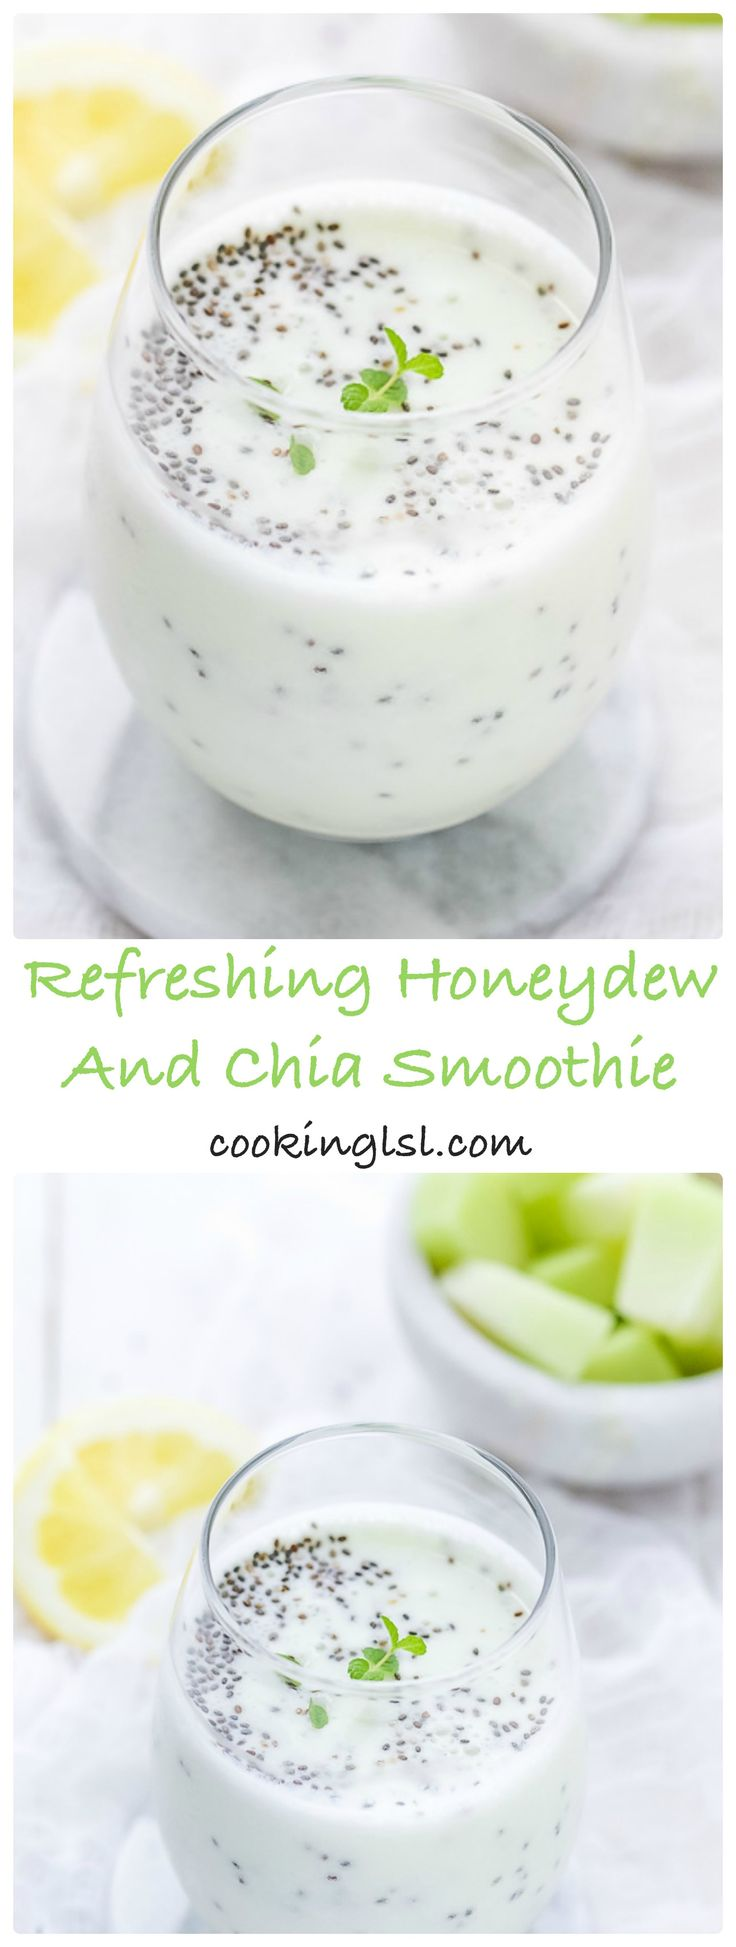 Refreshing-Honeydew-And-Chia-Smoothie